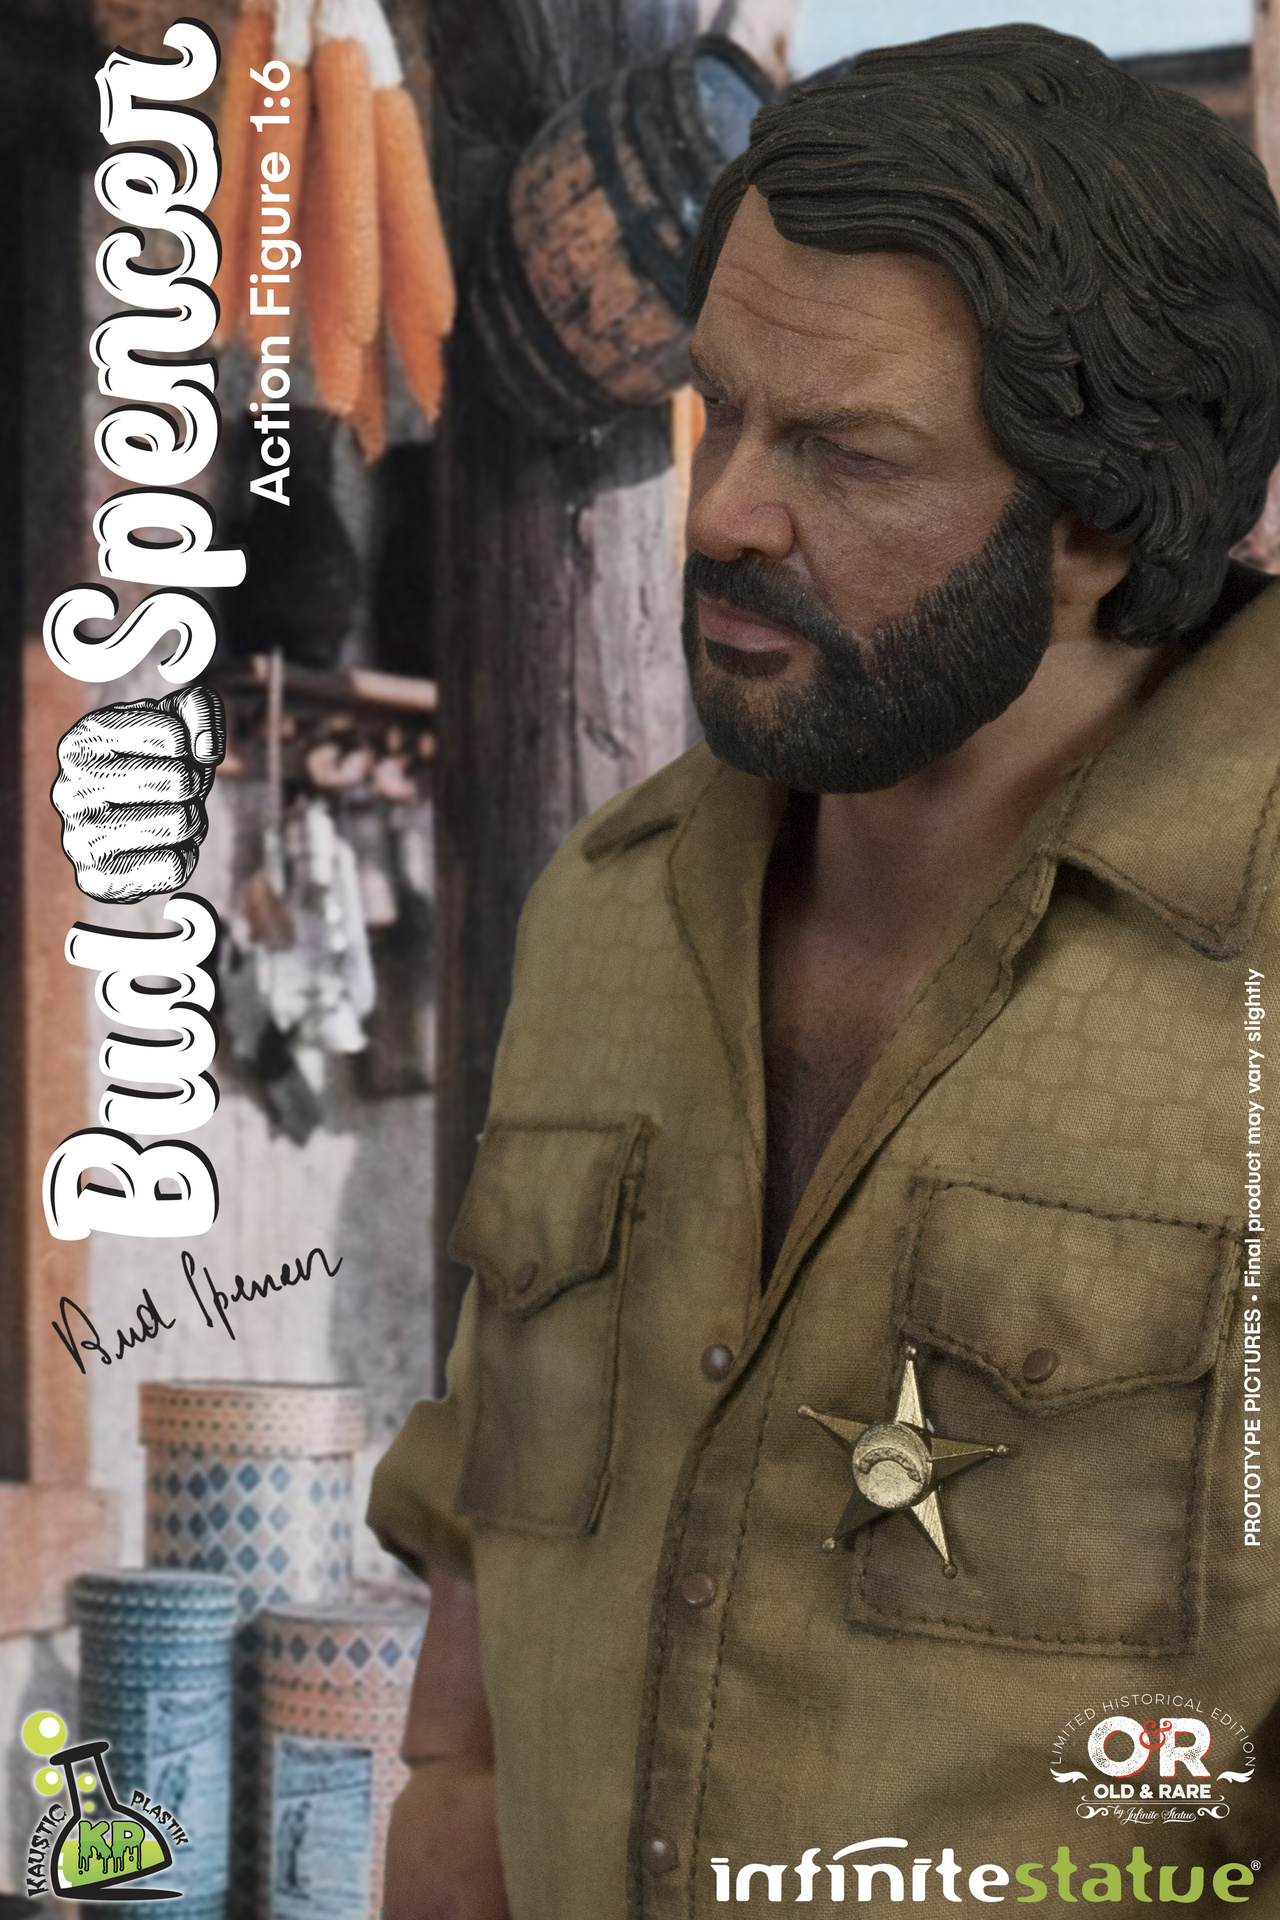 Link a bud_spencer_infinite_statue_action_figure-11